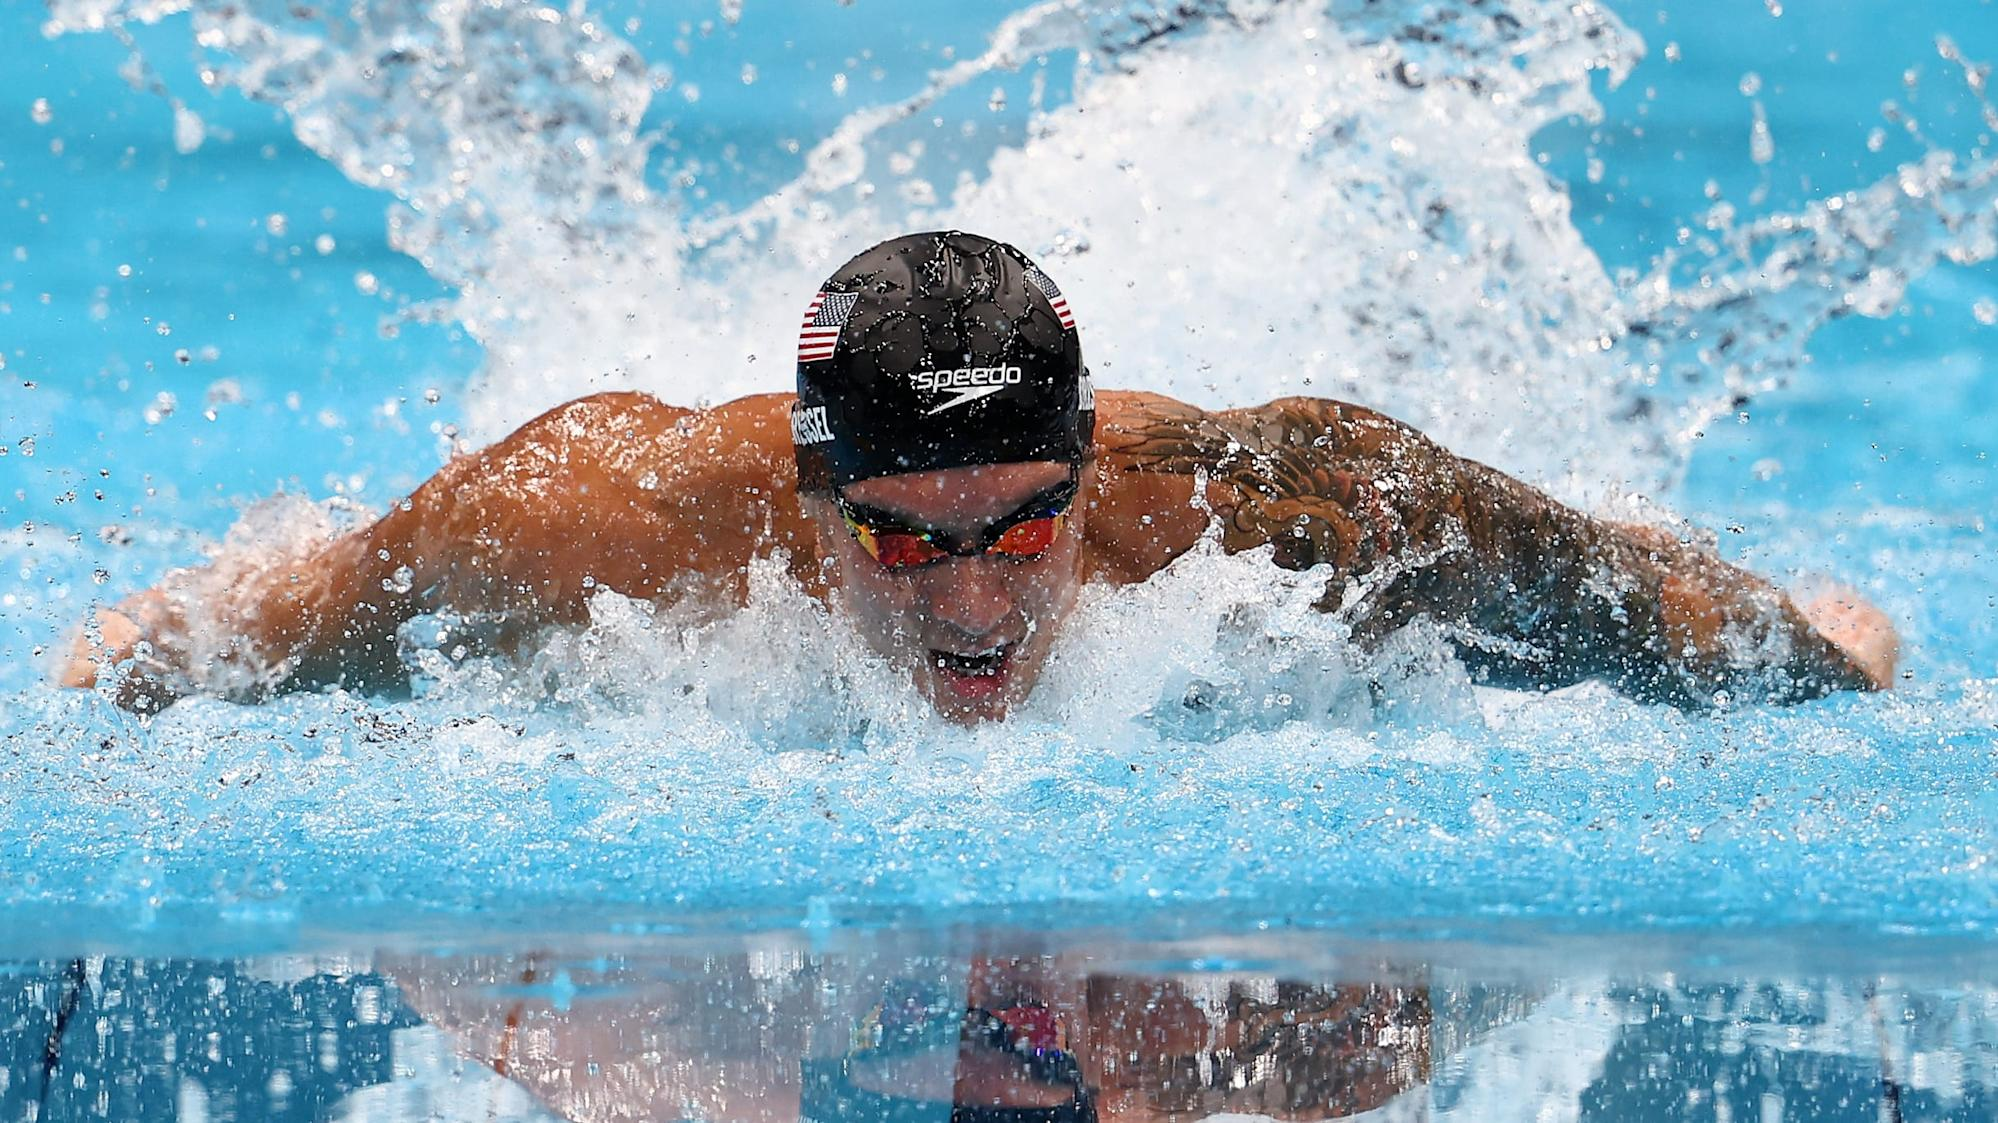 Caeleb Dressel breaks another world record in the Olympic Games - Yahoo Philippines News